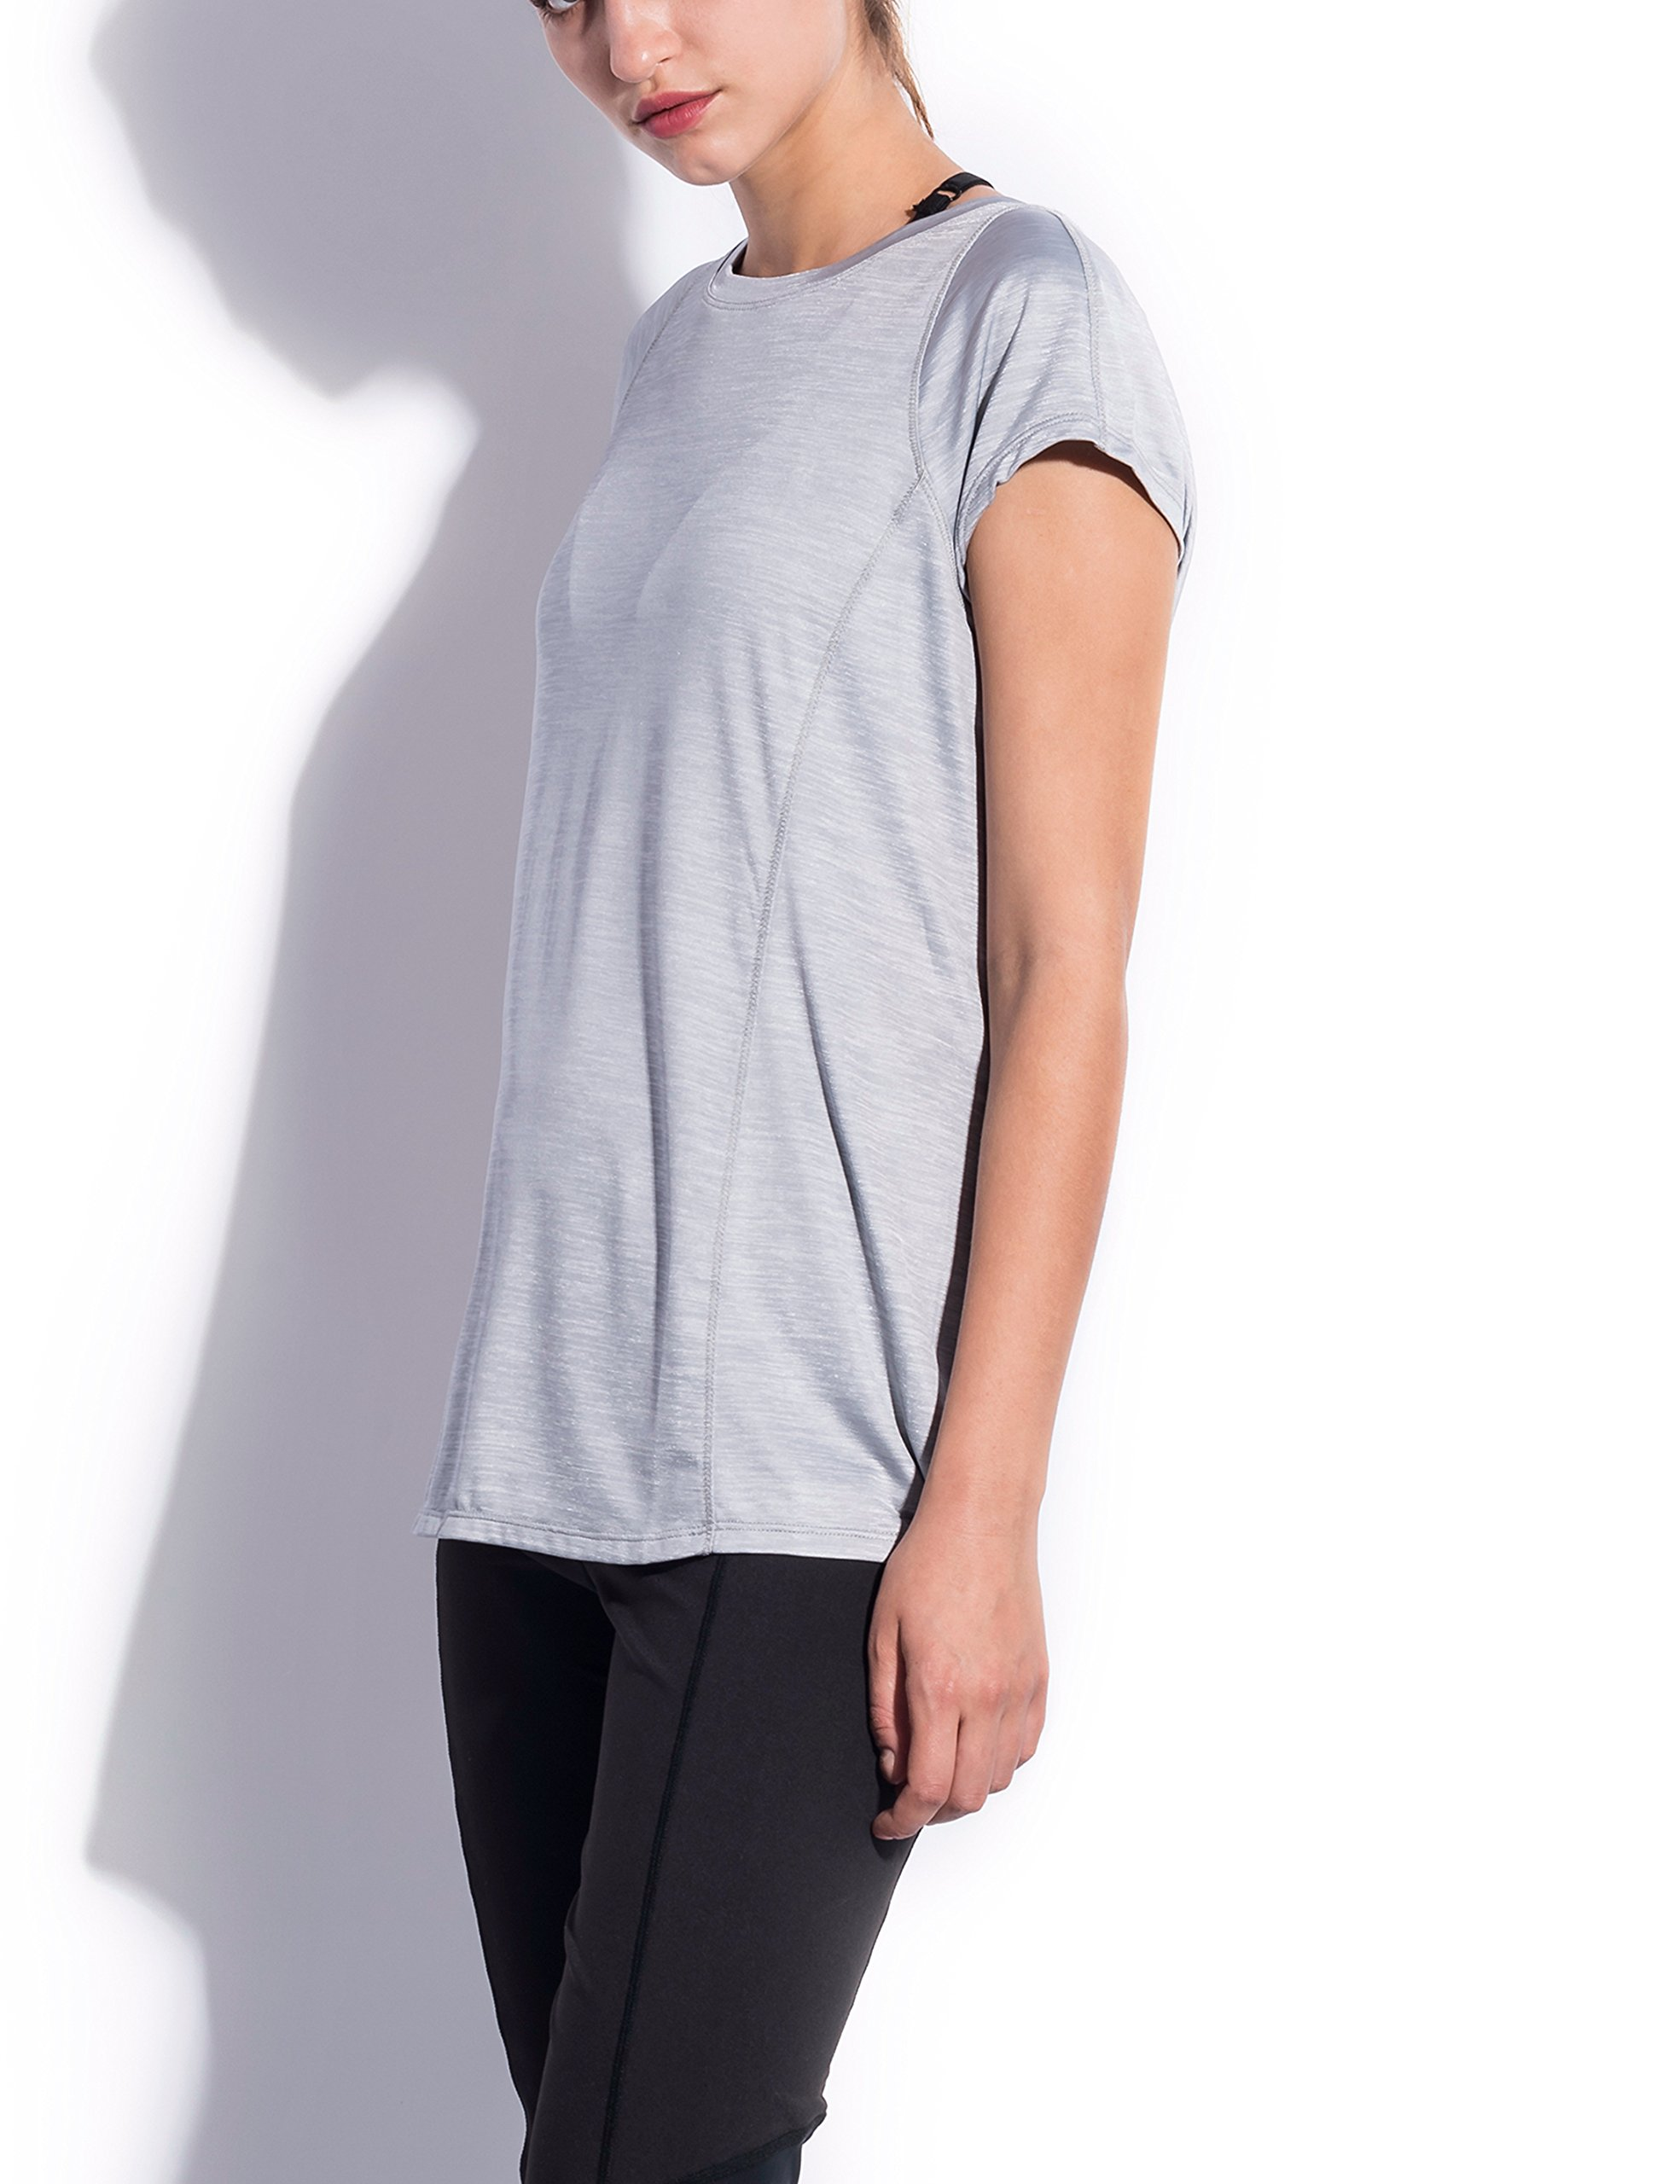 SPECIALMAGIC Women\'s Athletic Short Sleeve Round Neck Yoga Shirt Loose Fit Workout Top Light Grey L